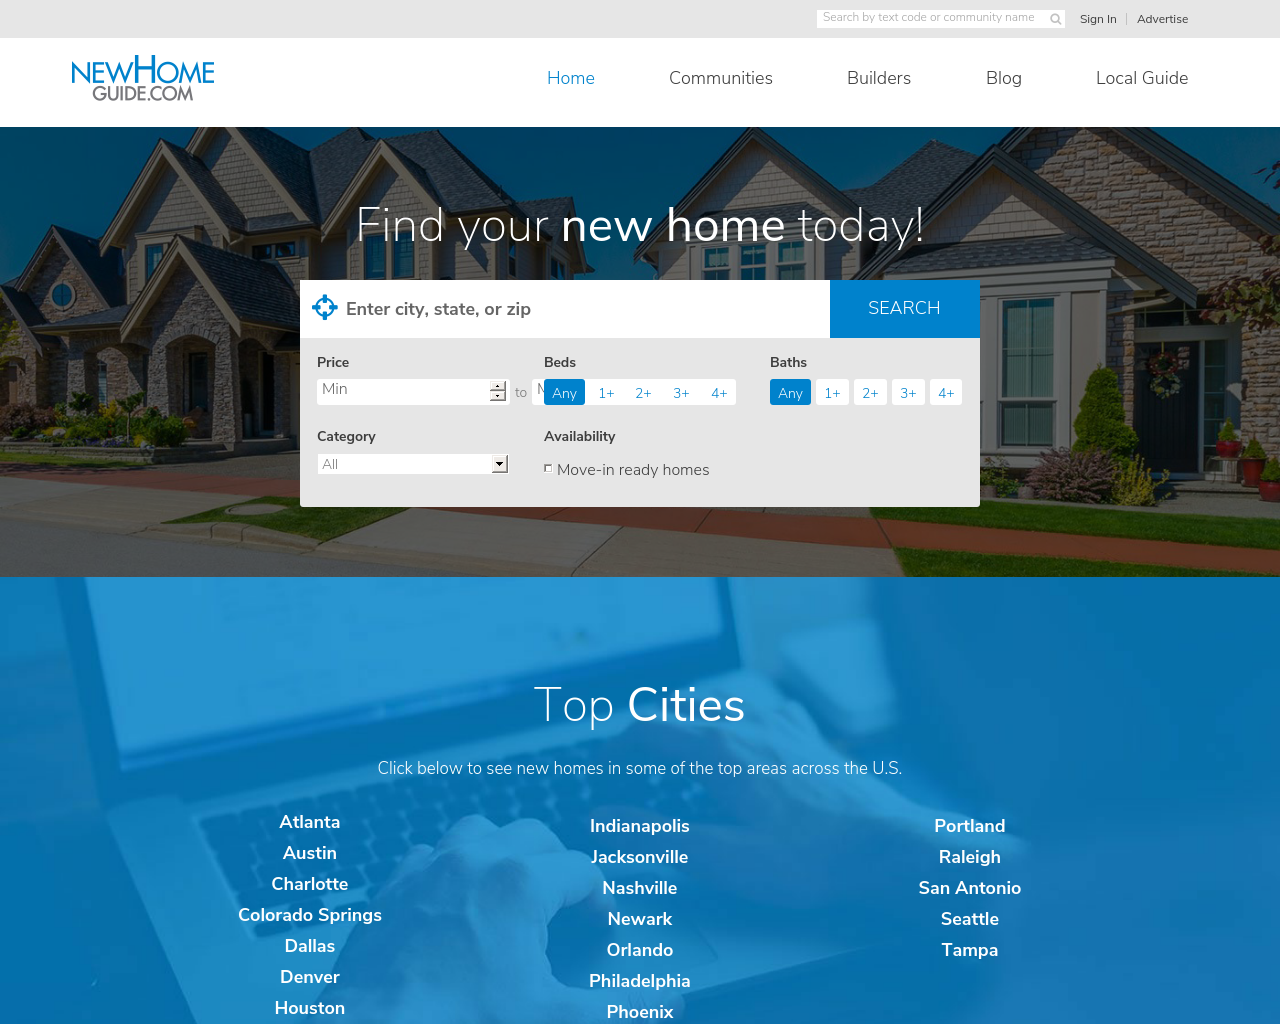 New-Home-Guides-Advertising-Reviews-Pricing